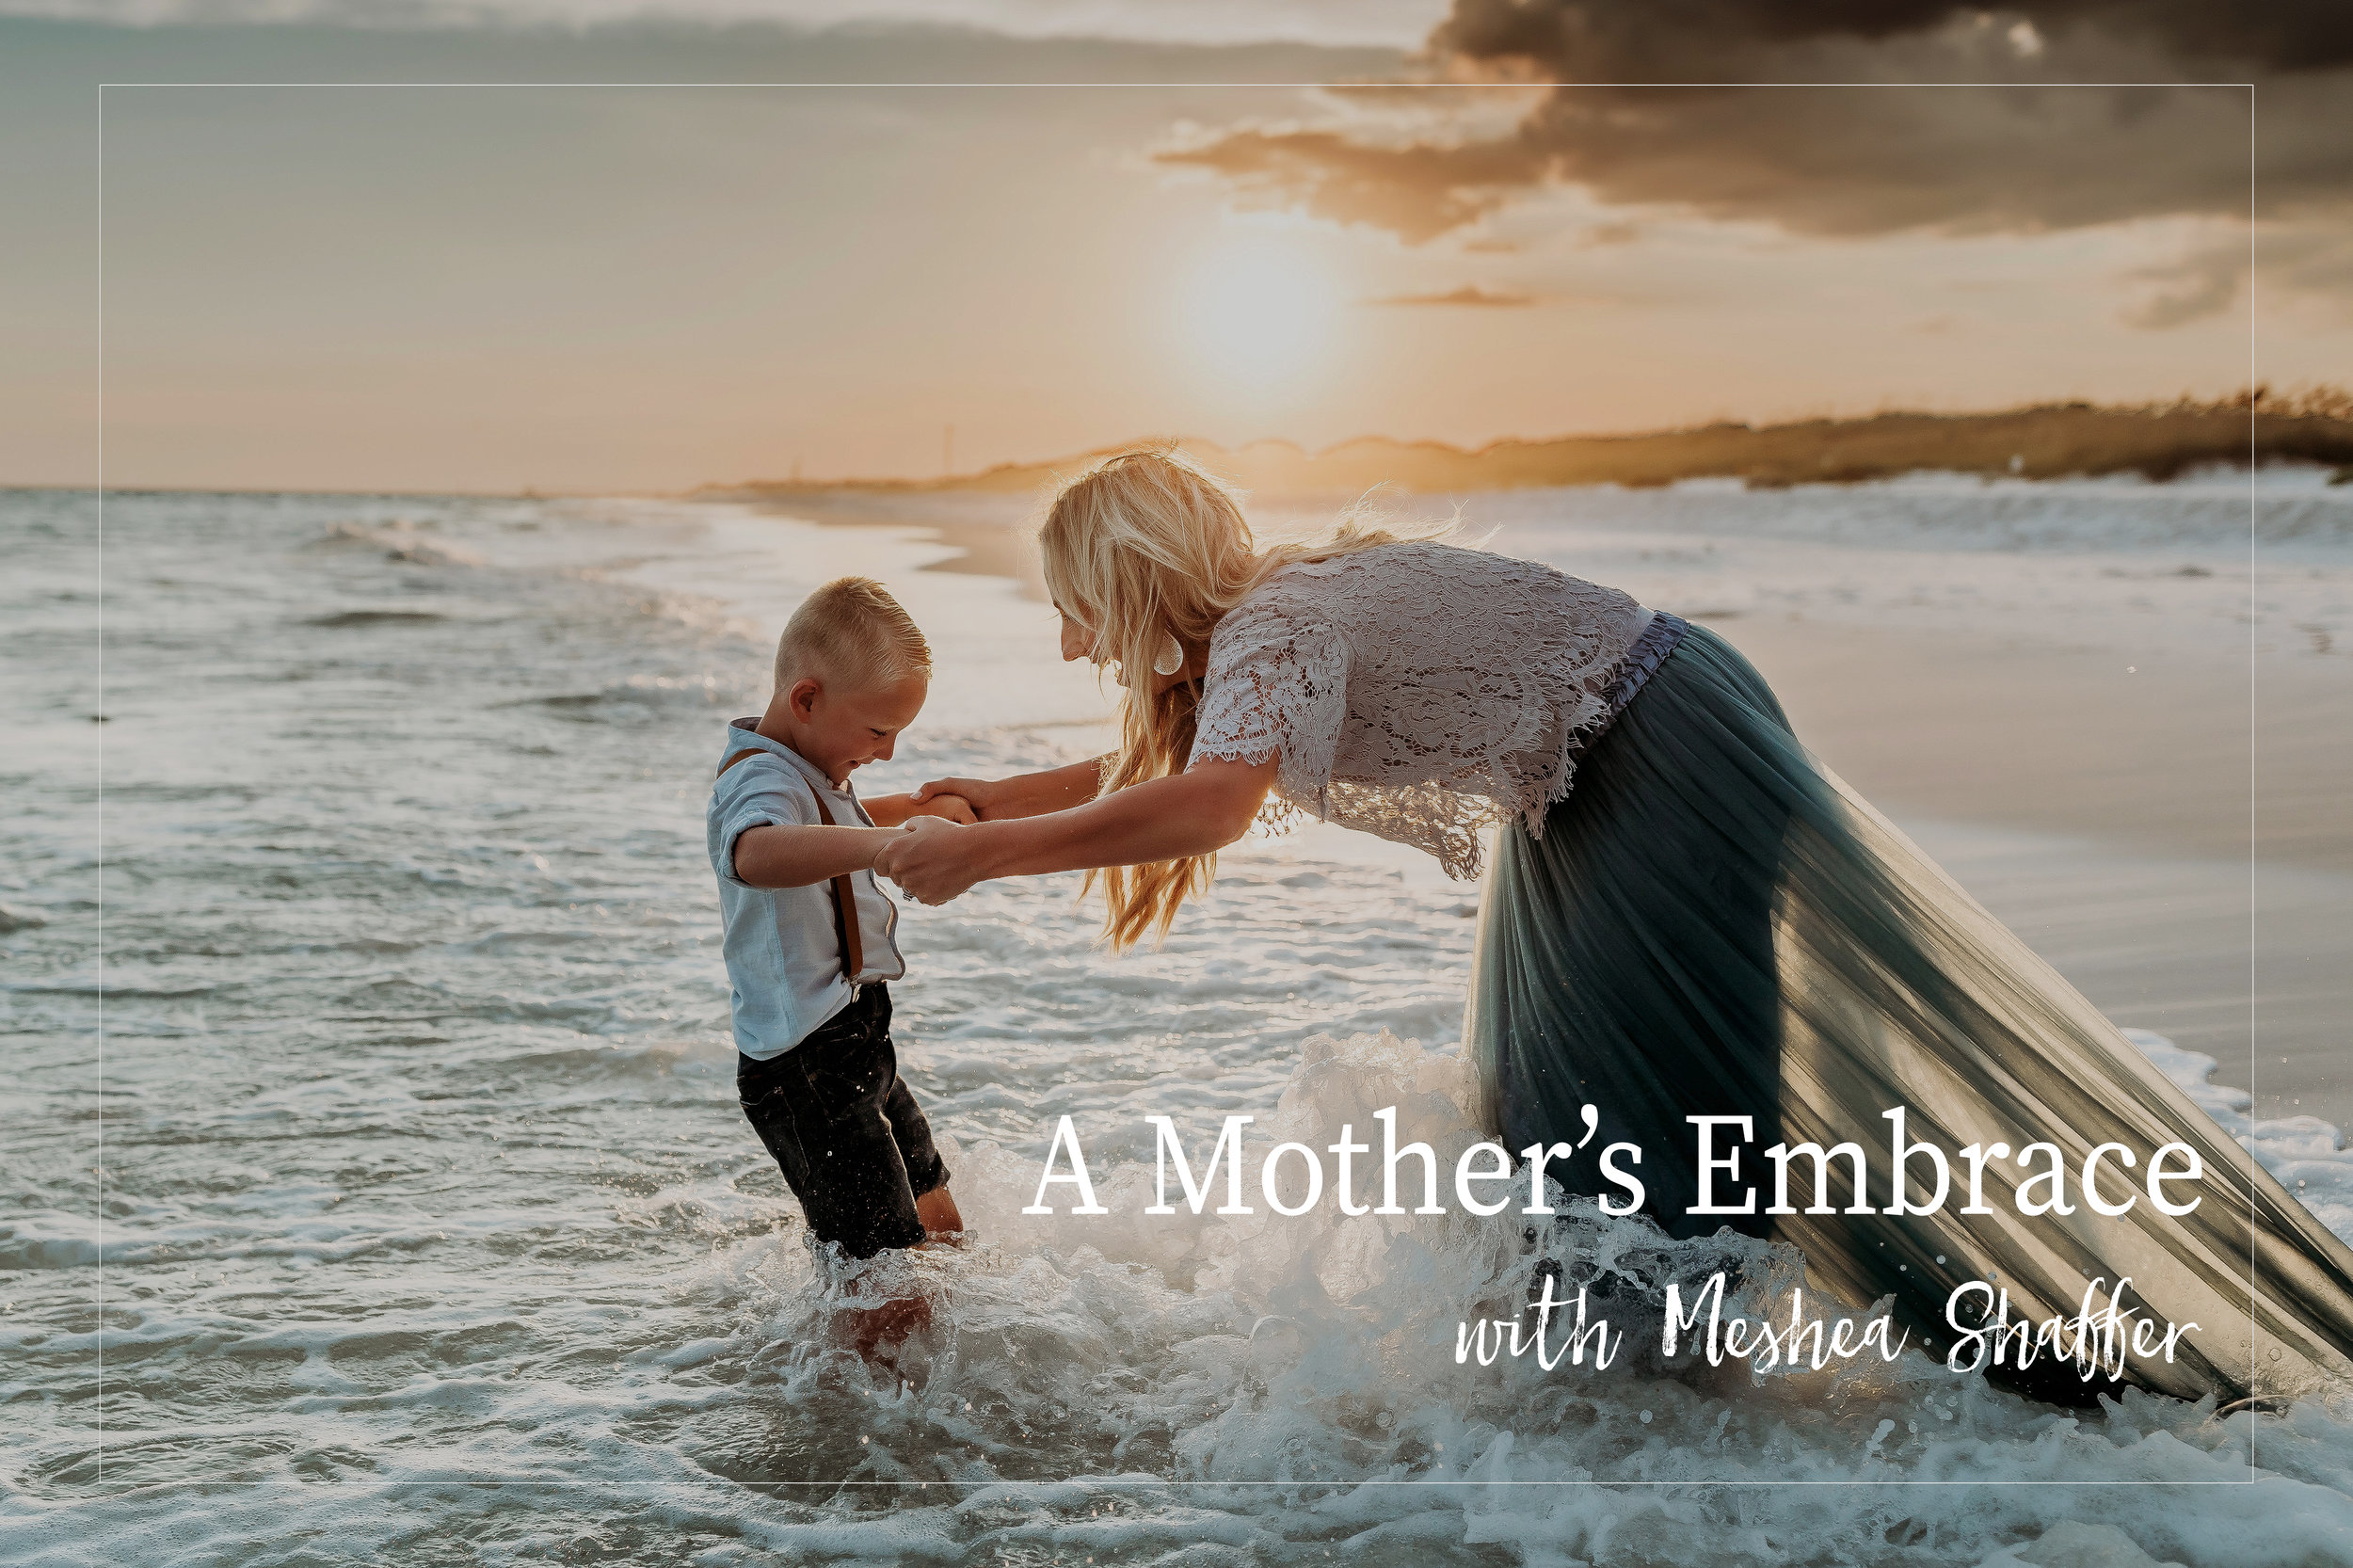 A Mother's Embrace - with Meshea Shaffer